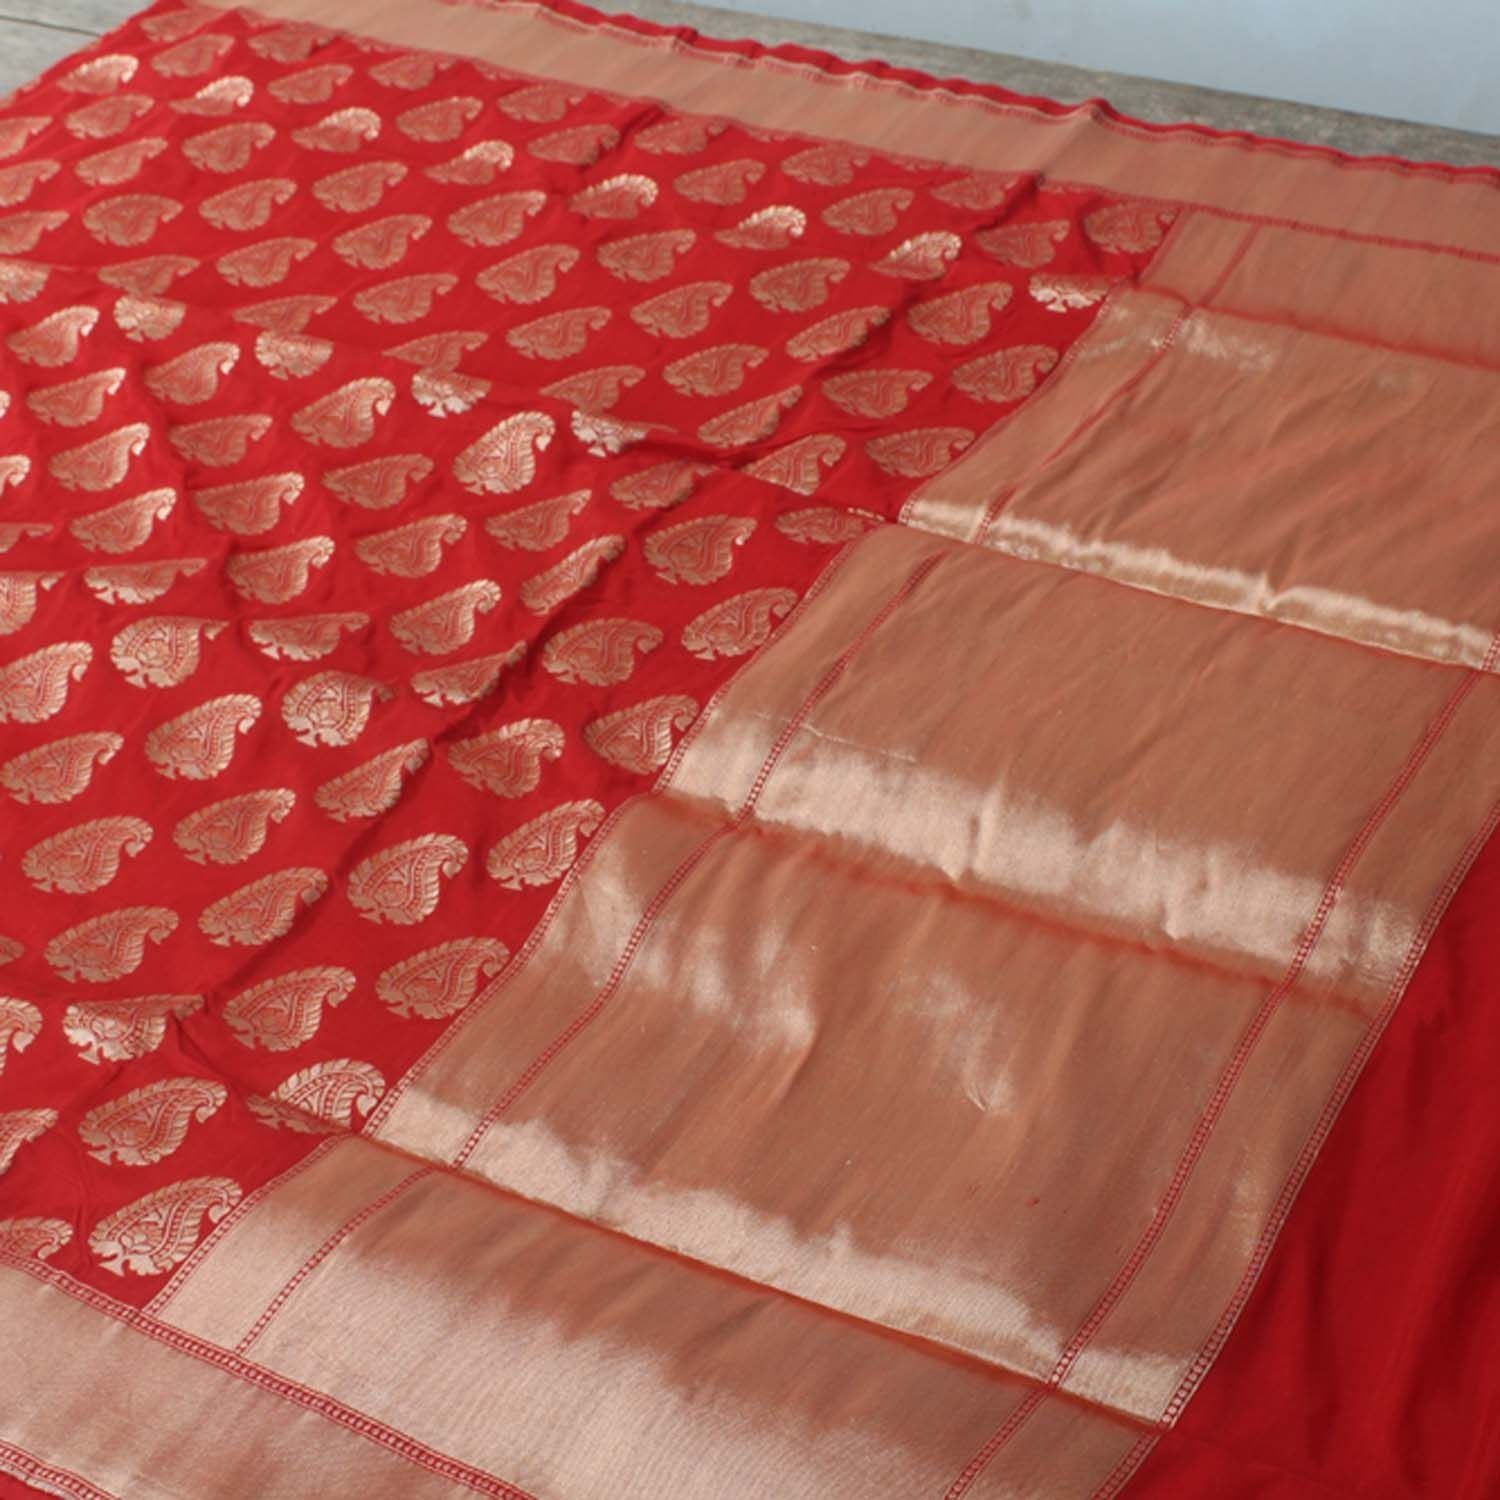 Red Pure Silk Georgette Banarasi Handloom Saree - Tilfi - 2